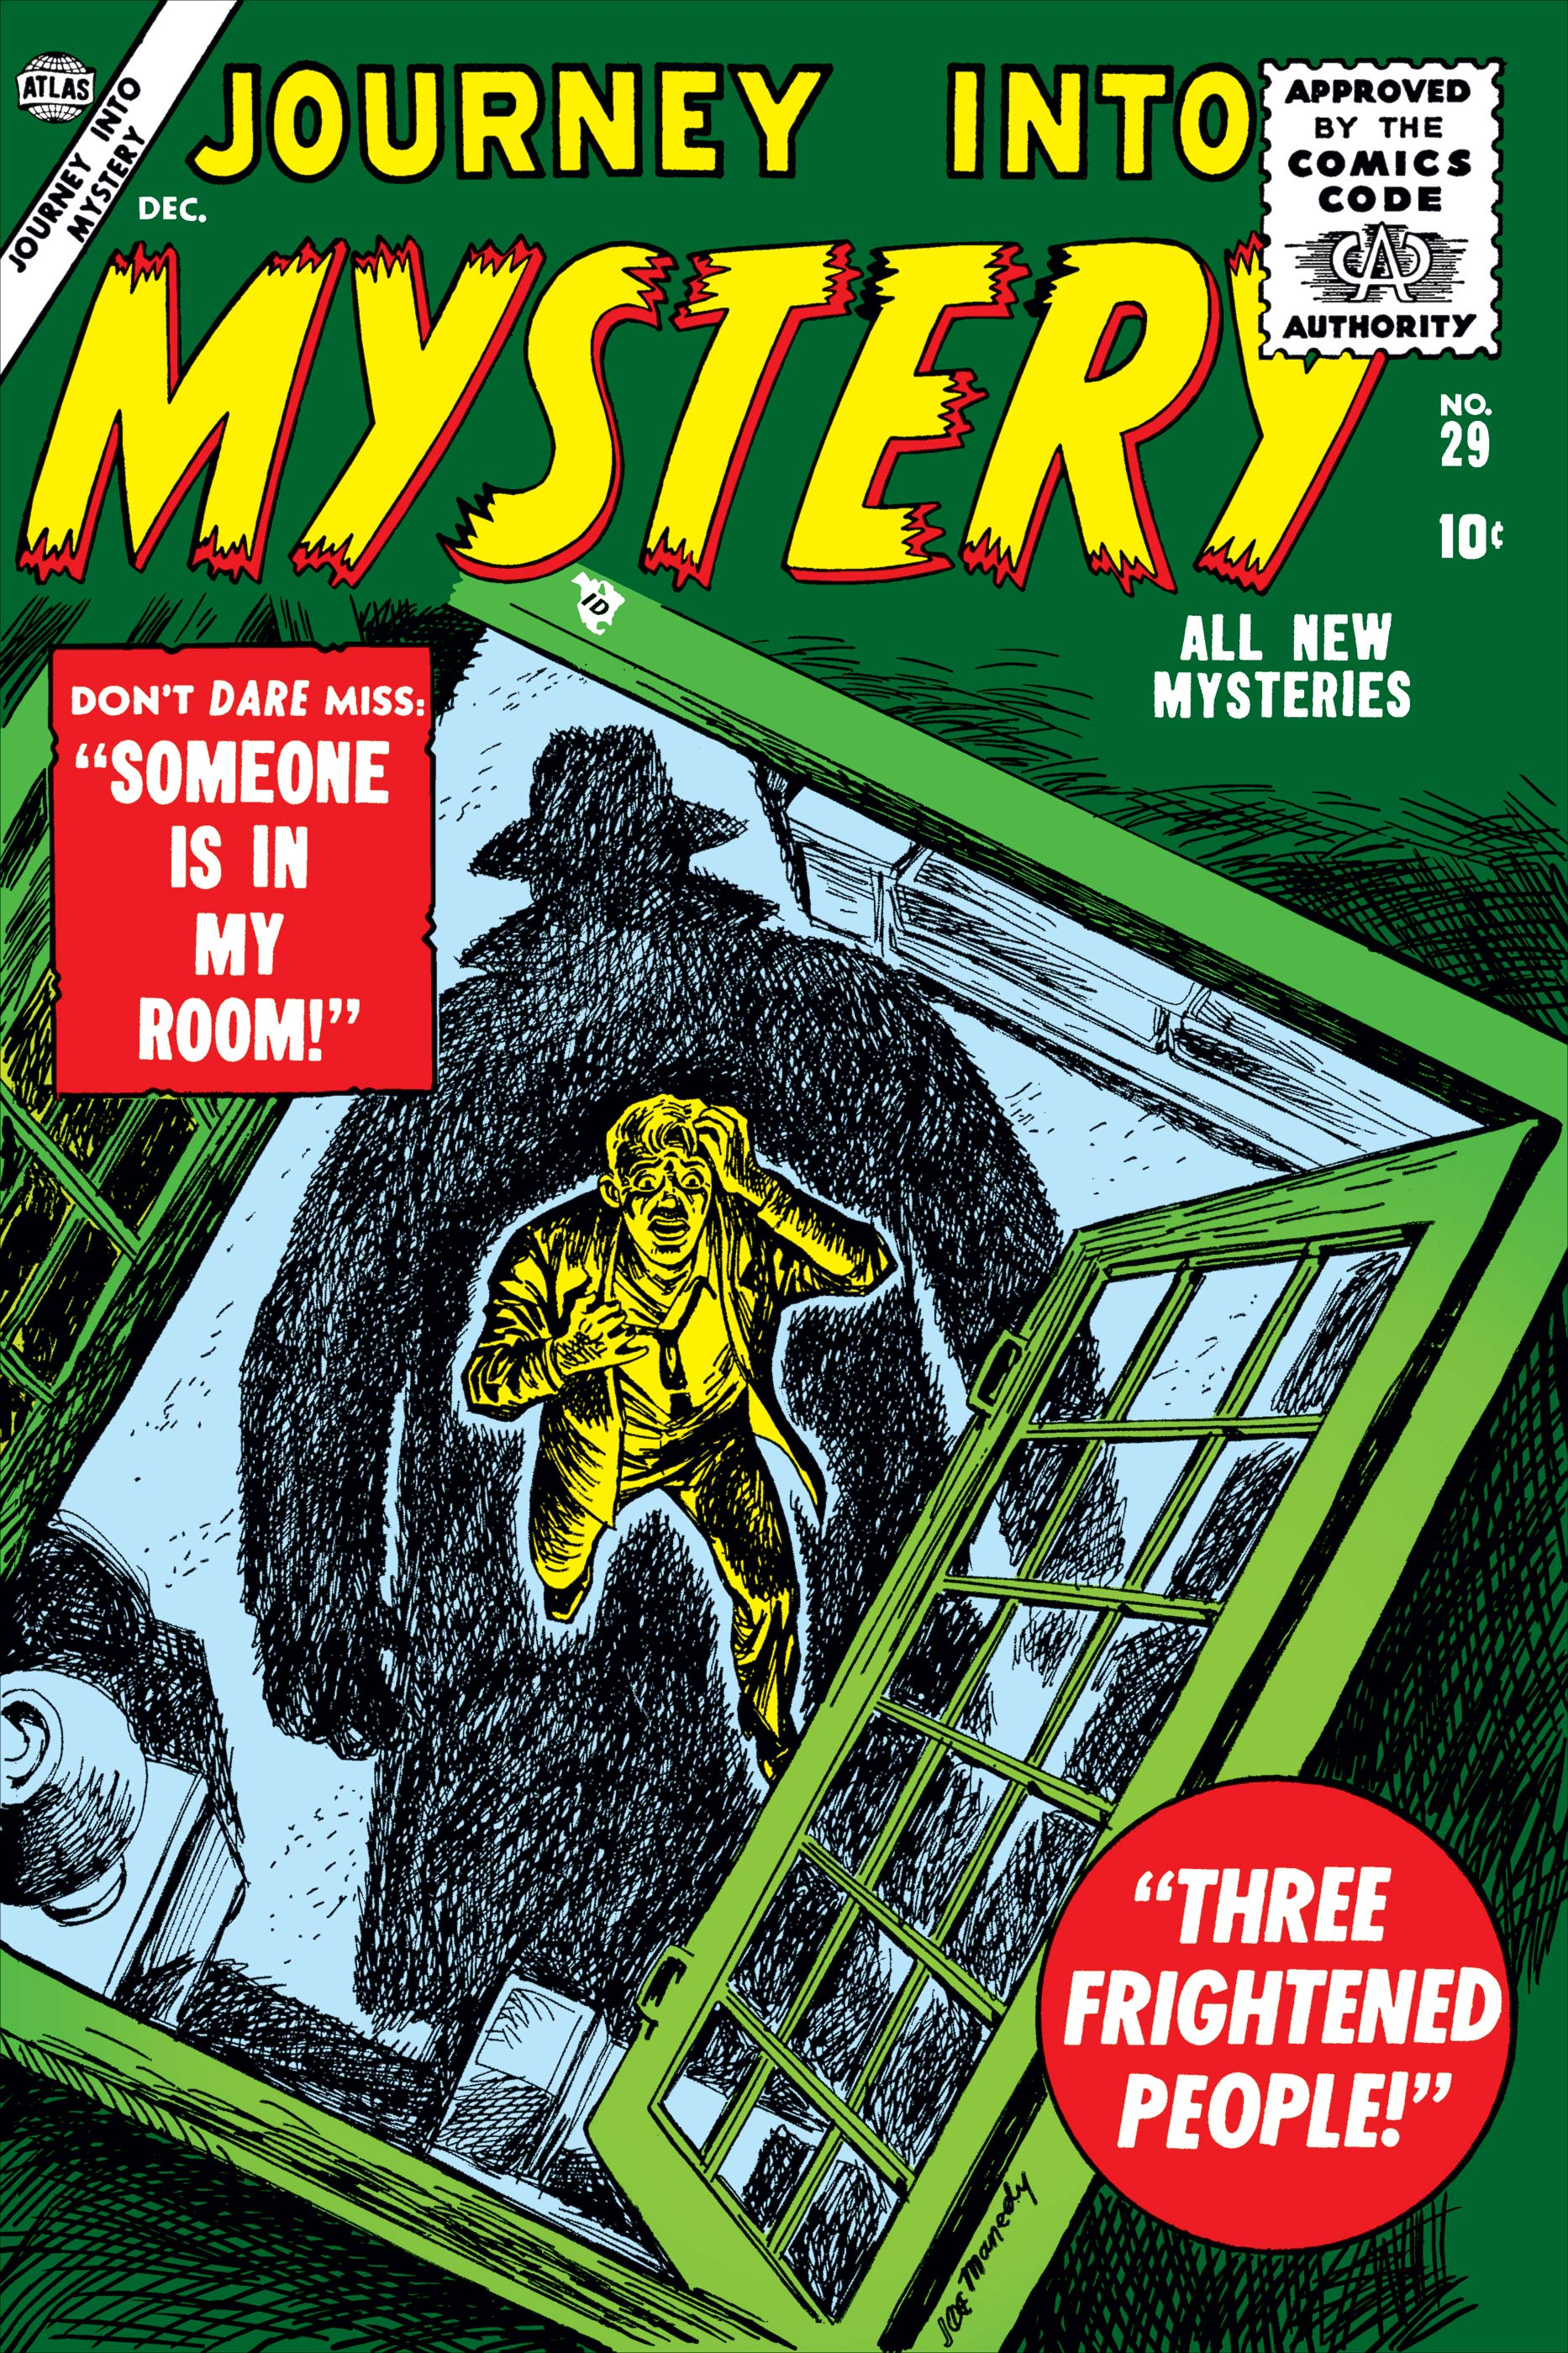 Journey Into Mystery (1952) #29